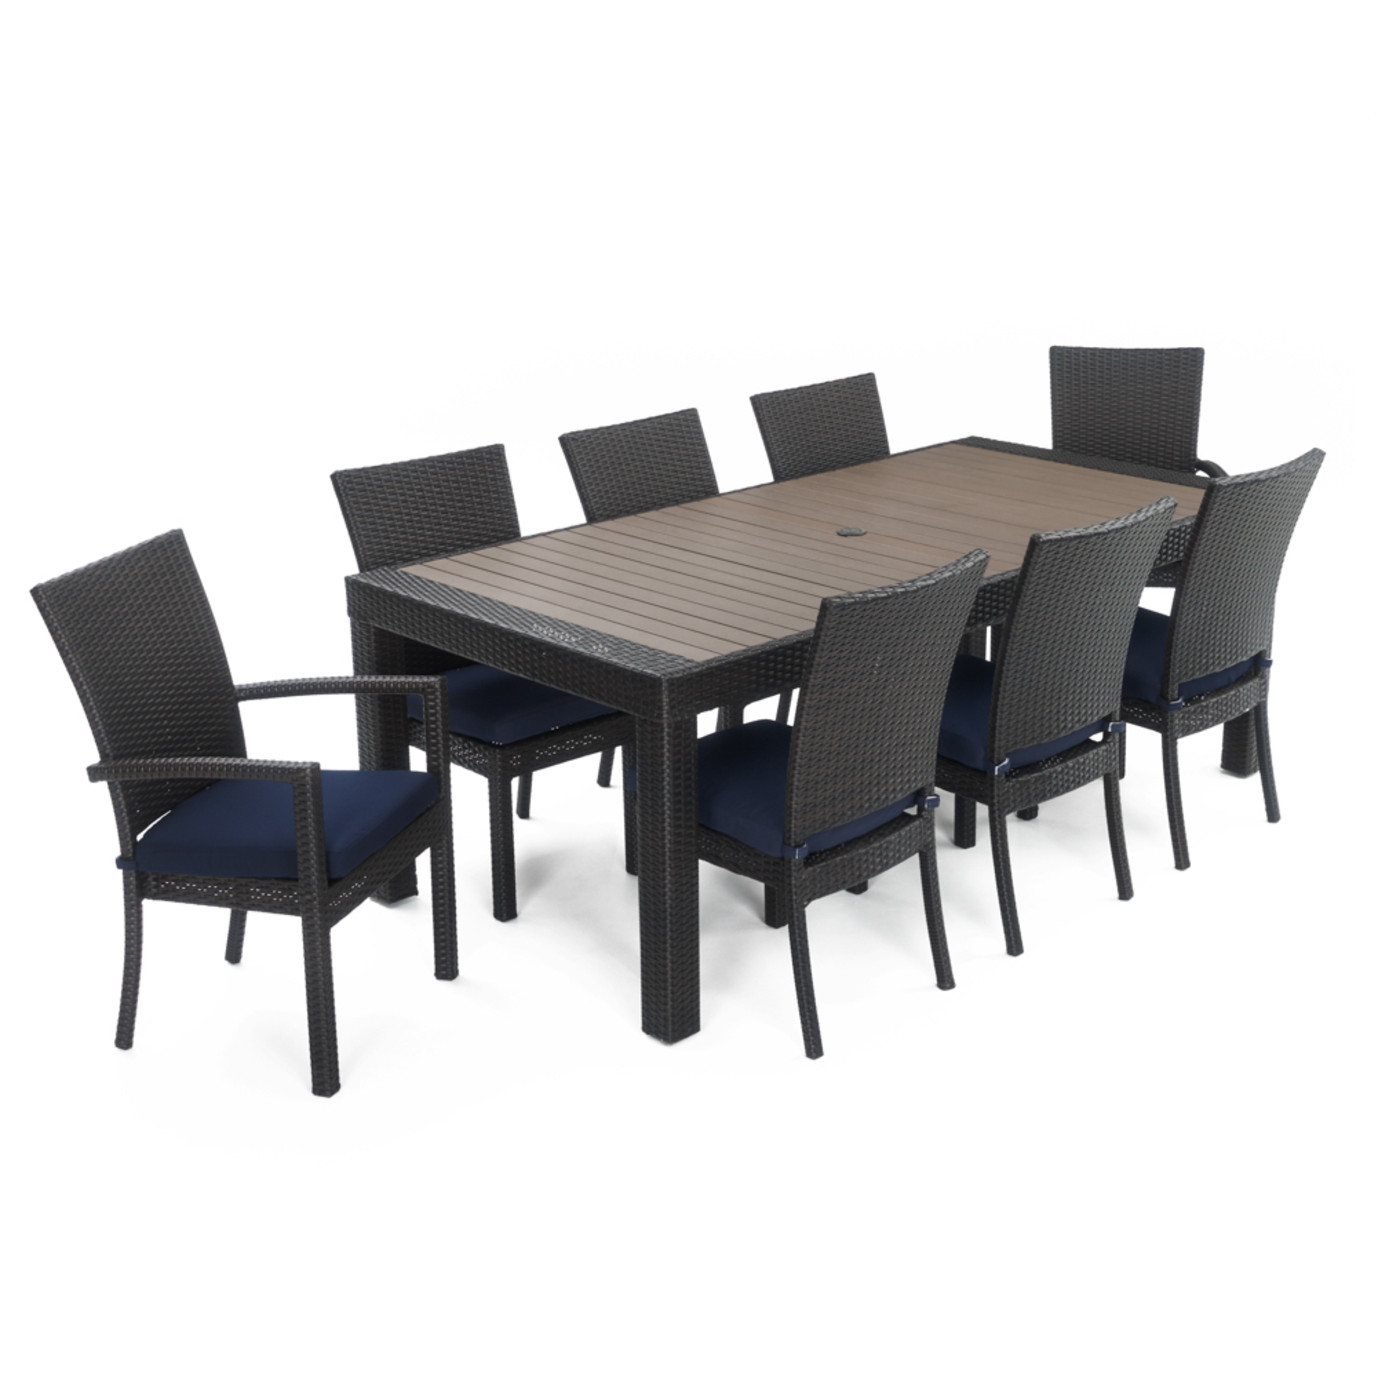 Deco™ 9pc Dining Set - Navy Blue